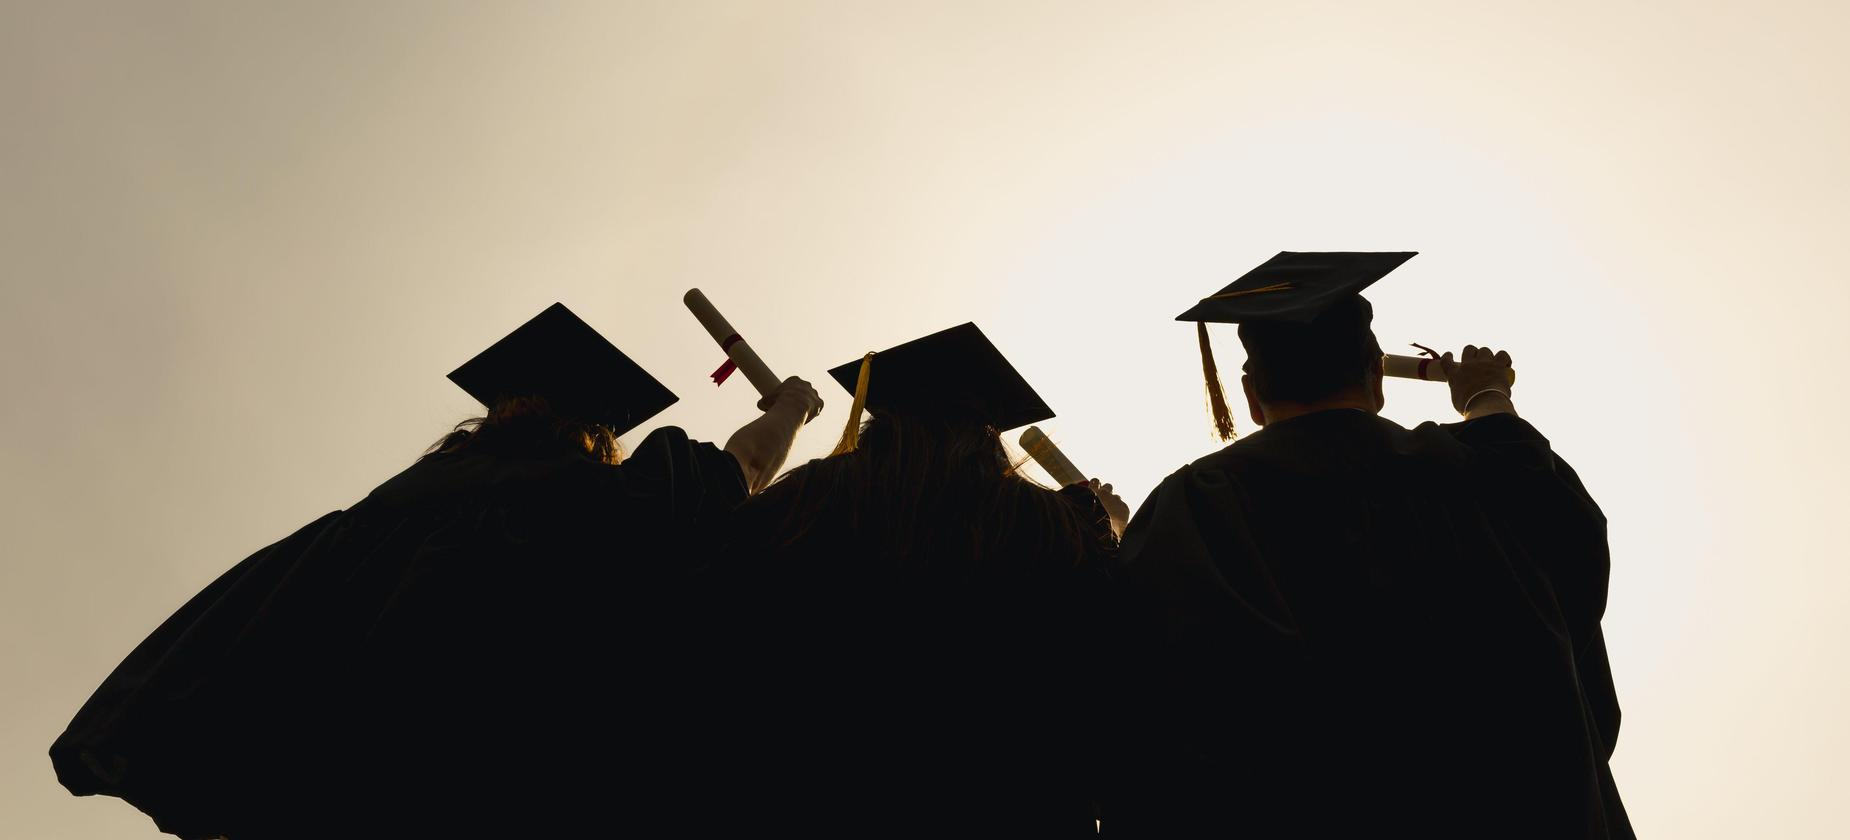 Students in graduation caps and gowns viewed from behind